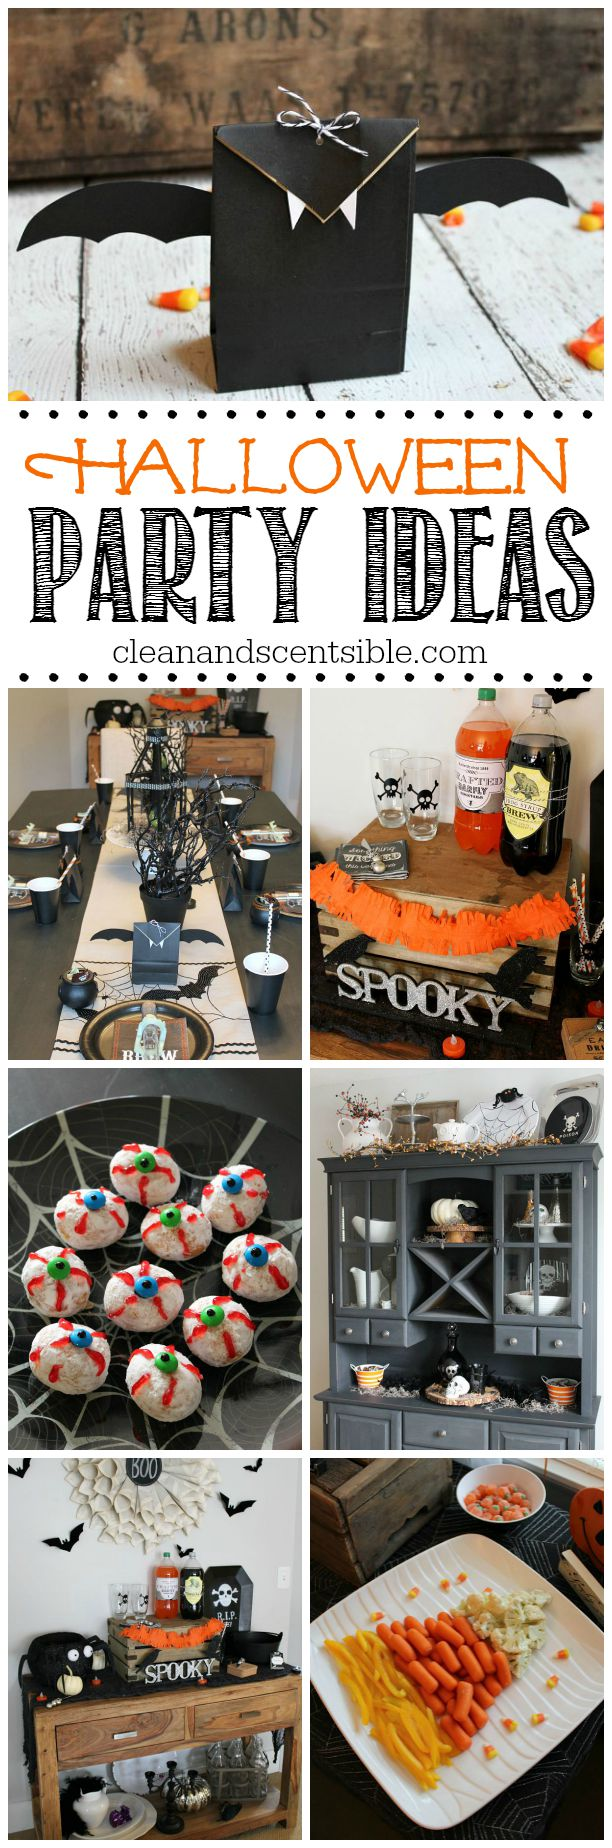 Fun collection of Halloween party ideas.